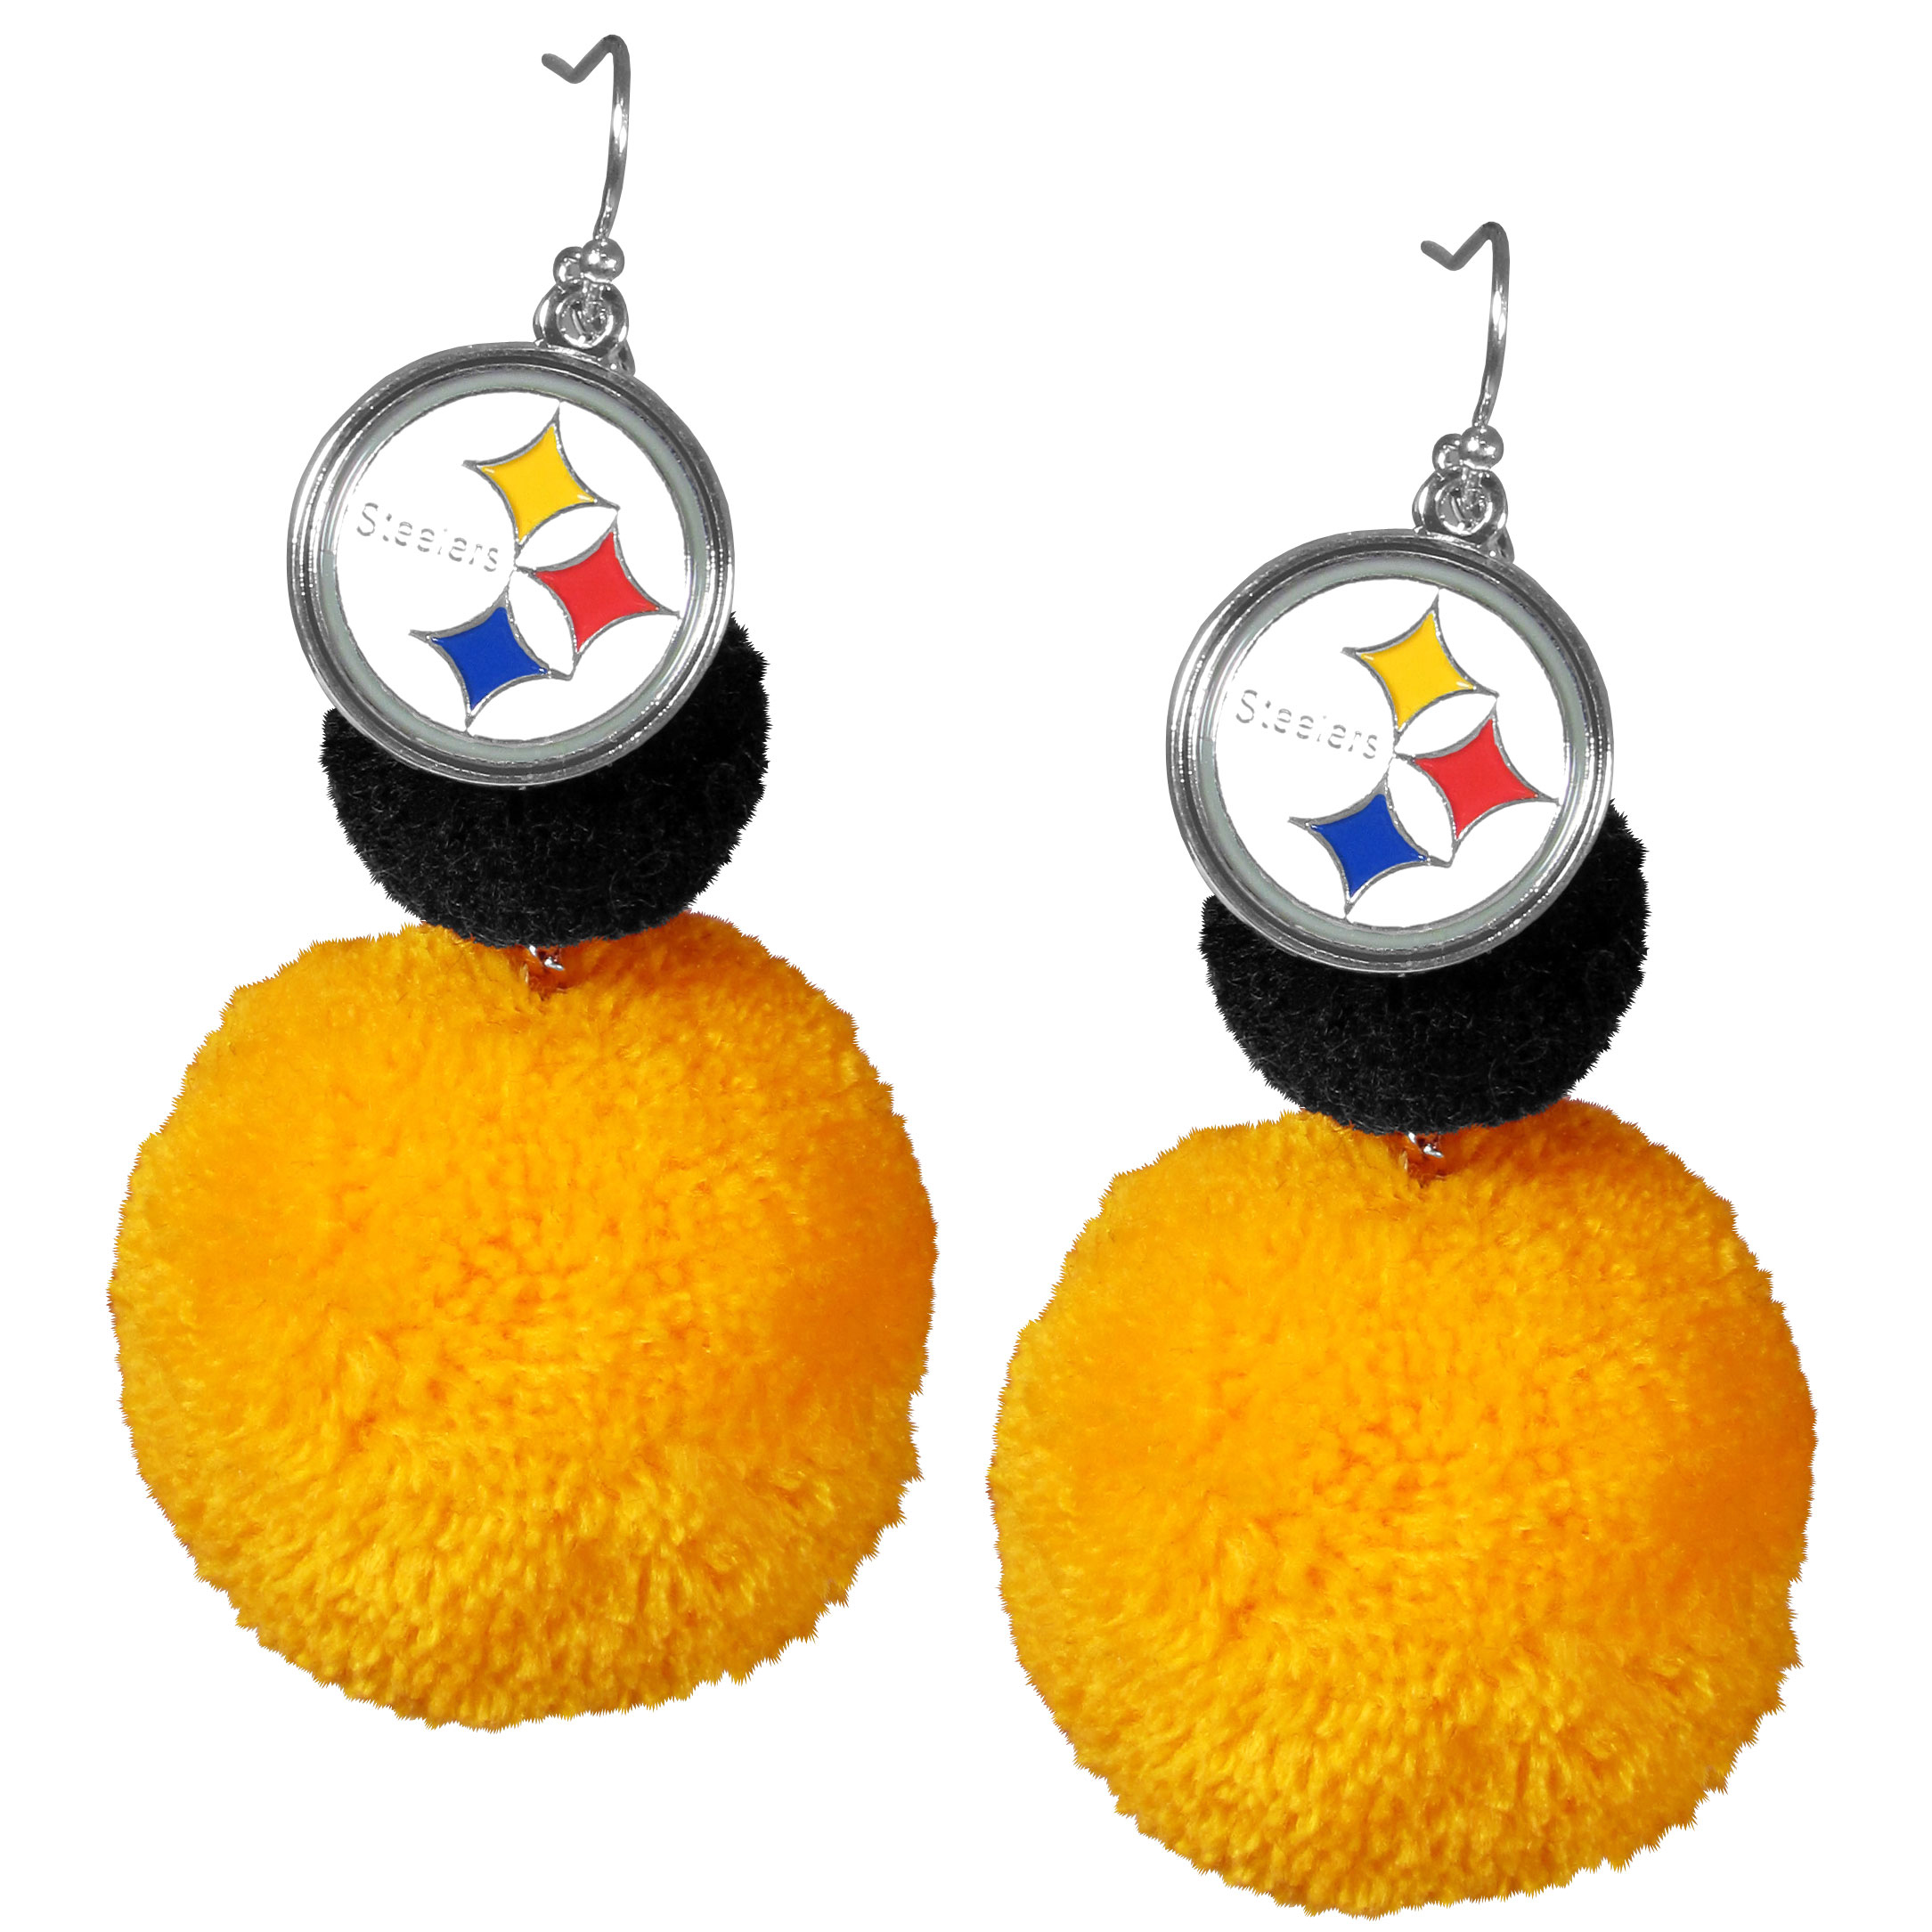 Pittsburgh Steelers Pom Pom Earrings - These fun and bold earrings are a game day must! The earrings feature a metal Pittsburgh Steelers charm with enameled color details that hangs above to colorful pom pom charms. The largest pom is 1.5 inches round for, the earrings hang at 3.5 inches long. The fishhook posts are nickel free and hypoallergenic.